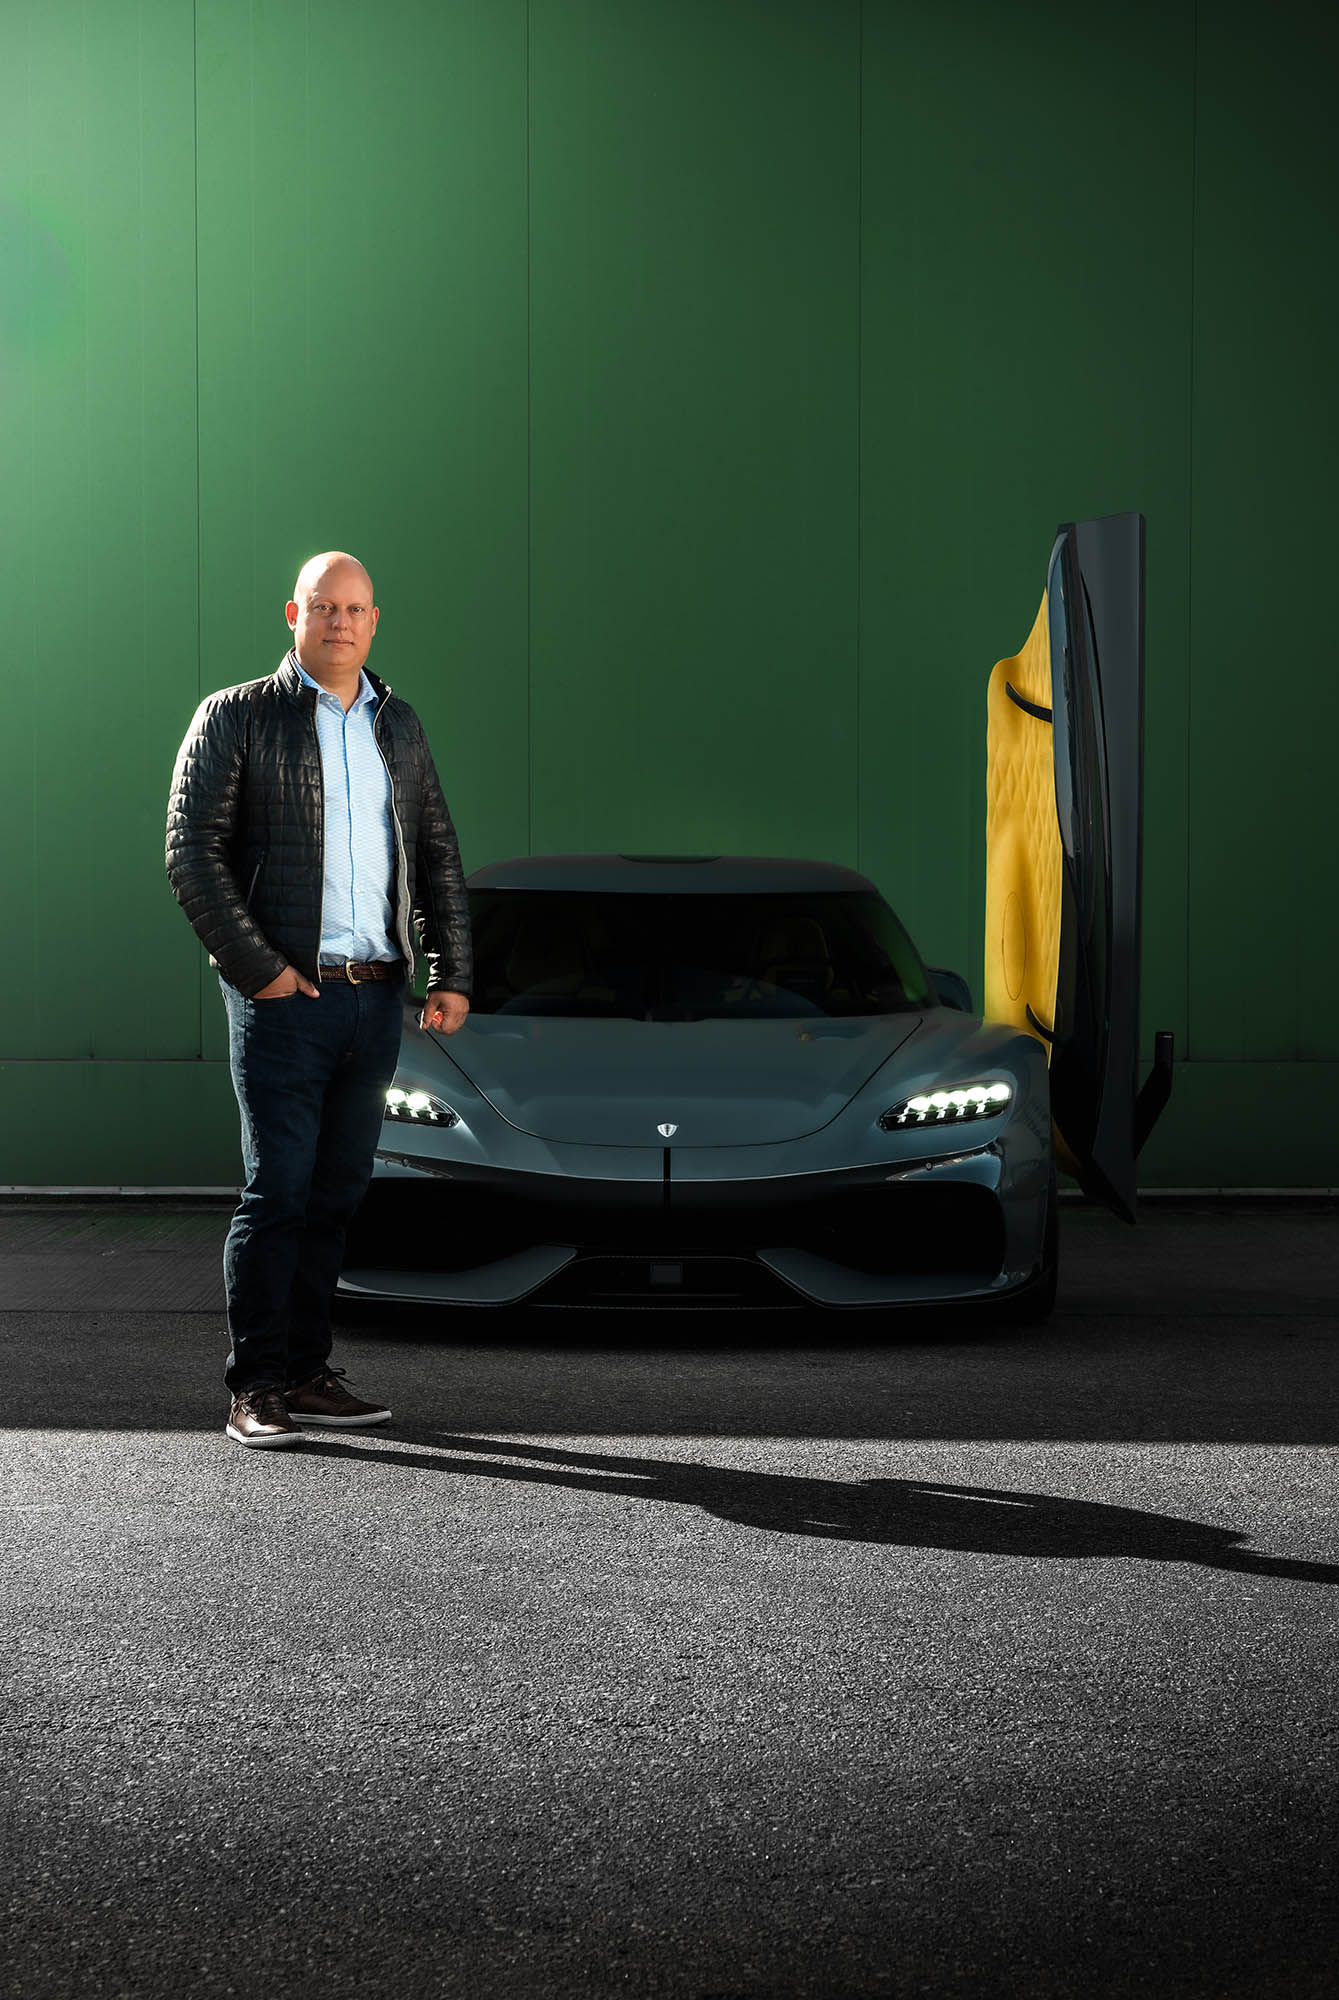 Christian von Koenigsegg, the man behind the dream factory in Ängelholm., Sweden. In the last 25 years, he has built hyper sports cars breaking records other only could dream of.